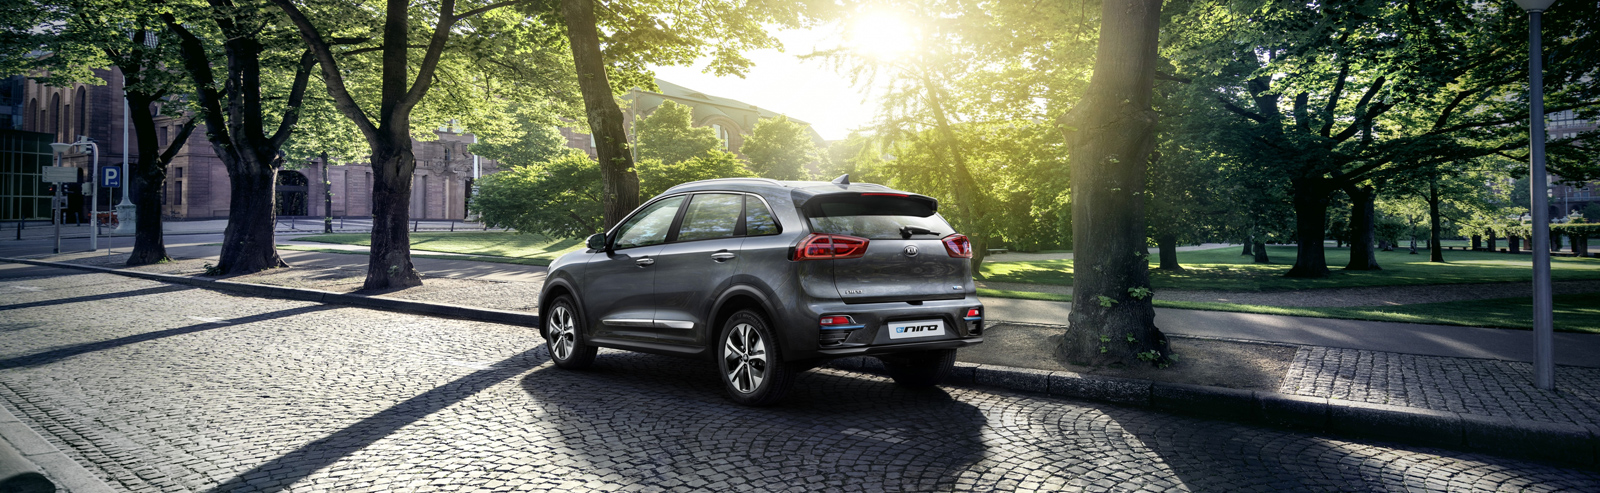 Kia has record hybrid, PHEV and BEV sales in Europe despite a challenging Q1